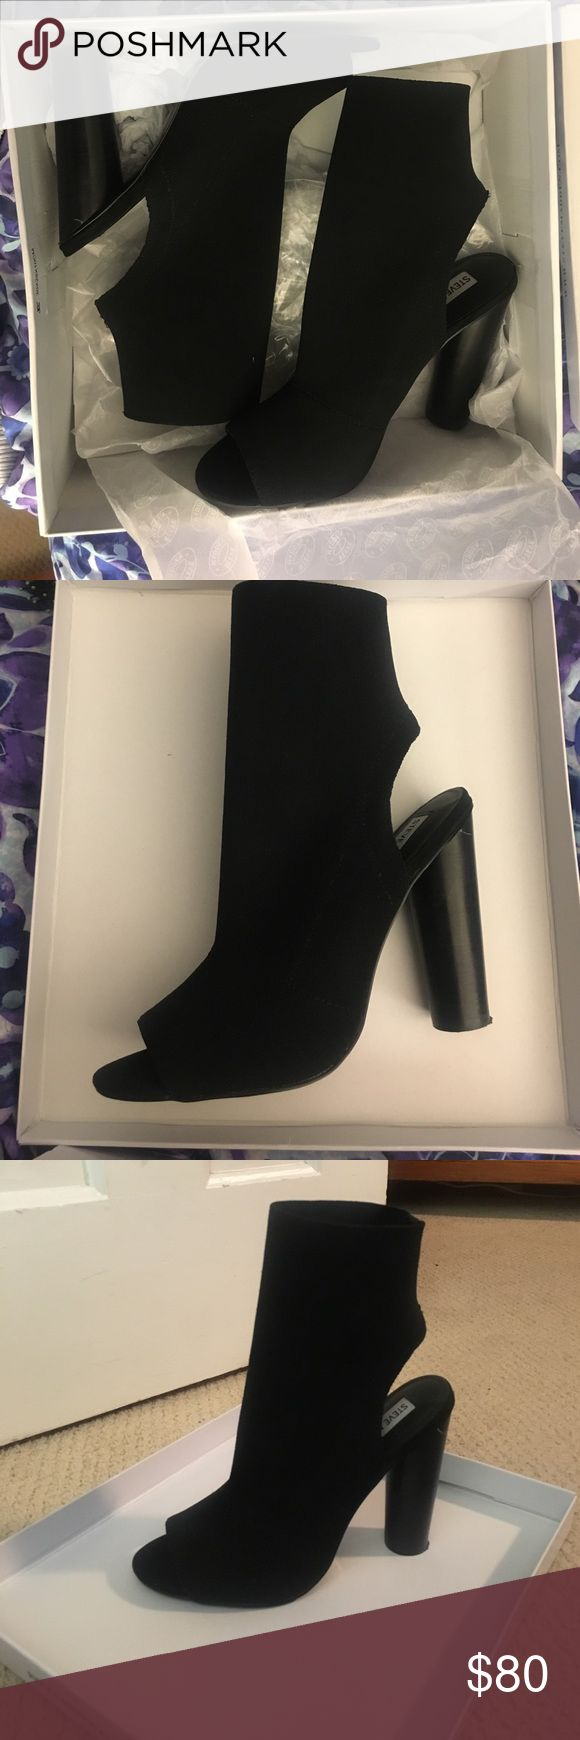 Steve Madden Young Black Peep Toe Boot